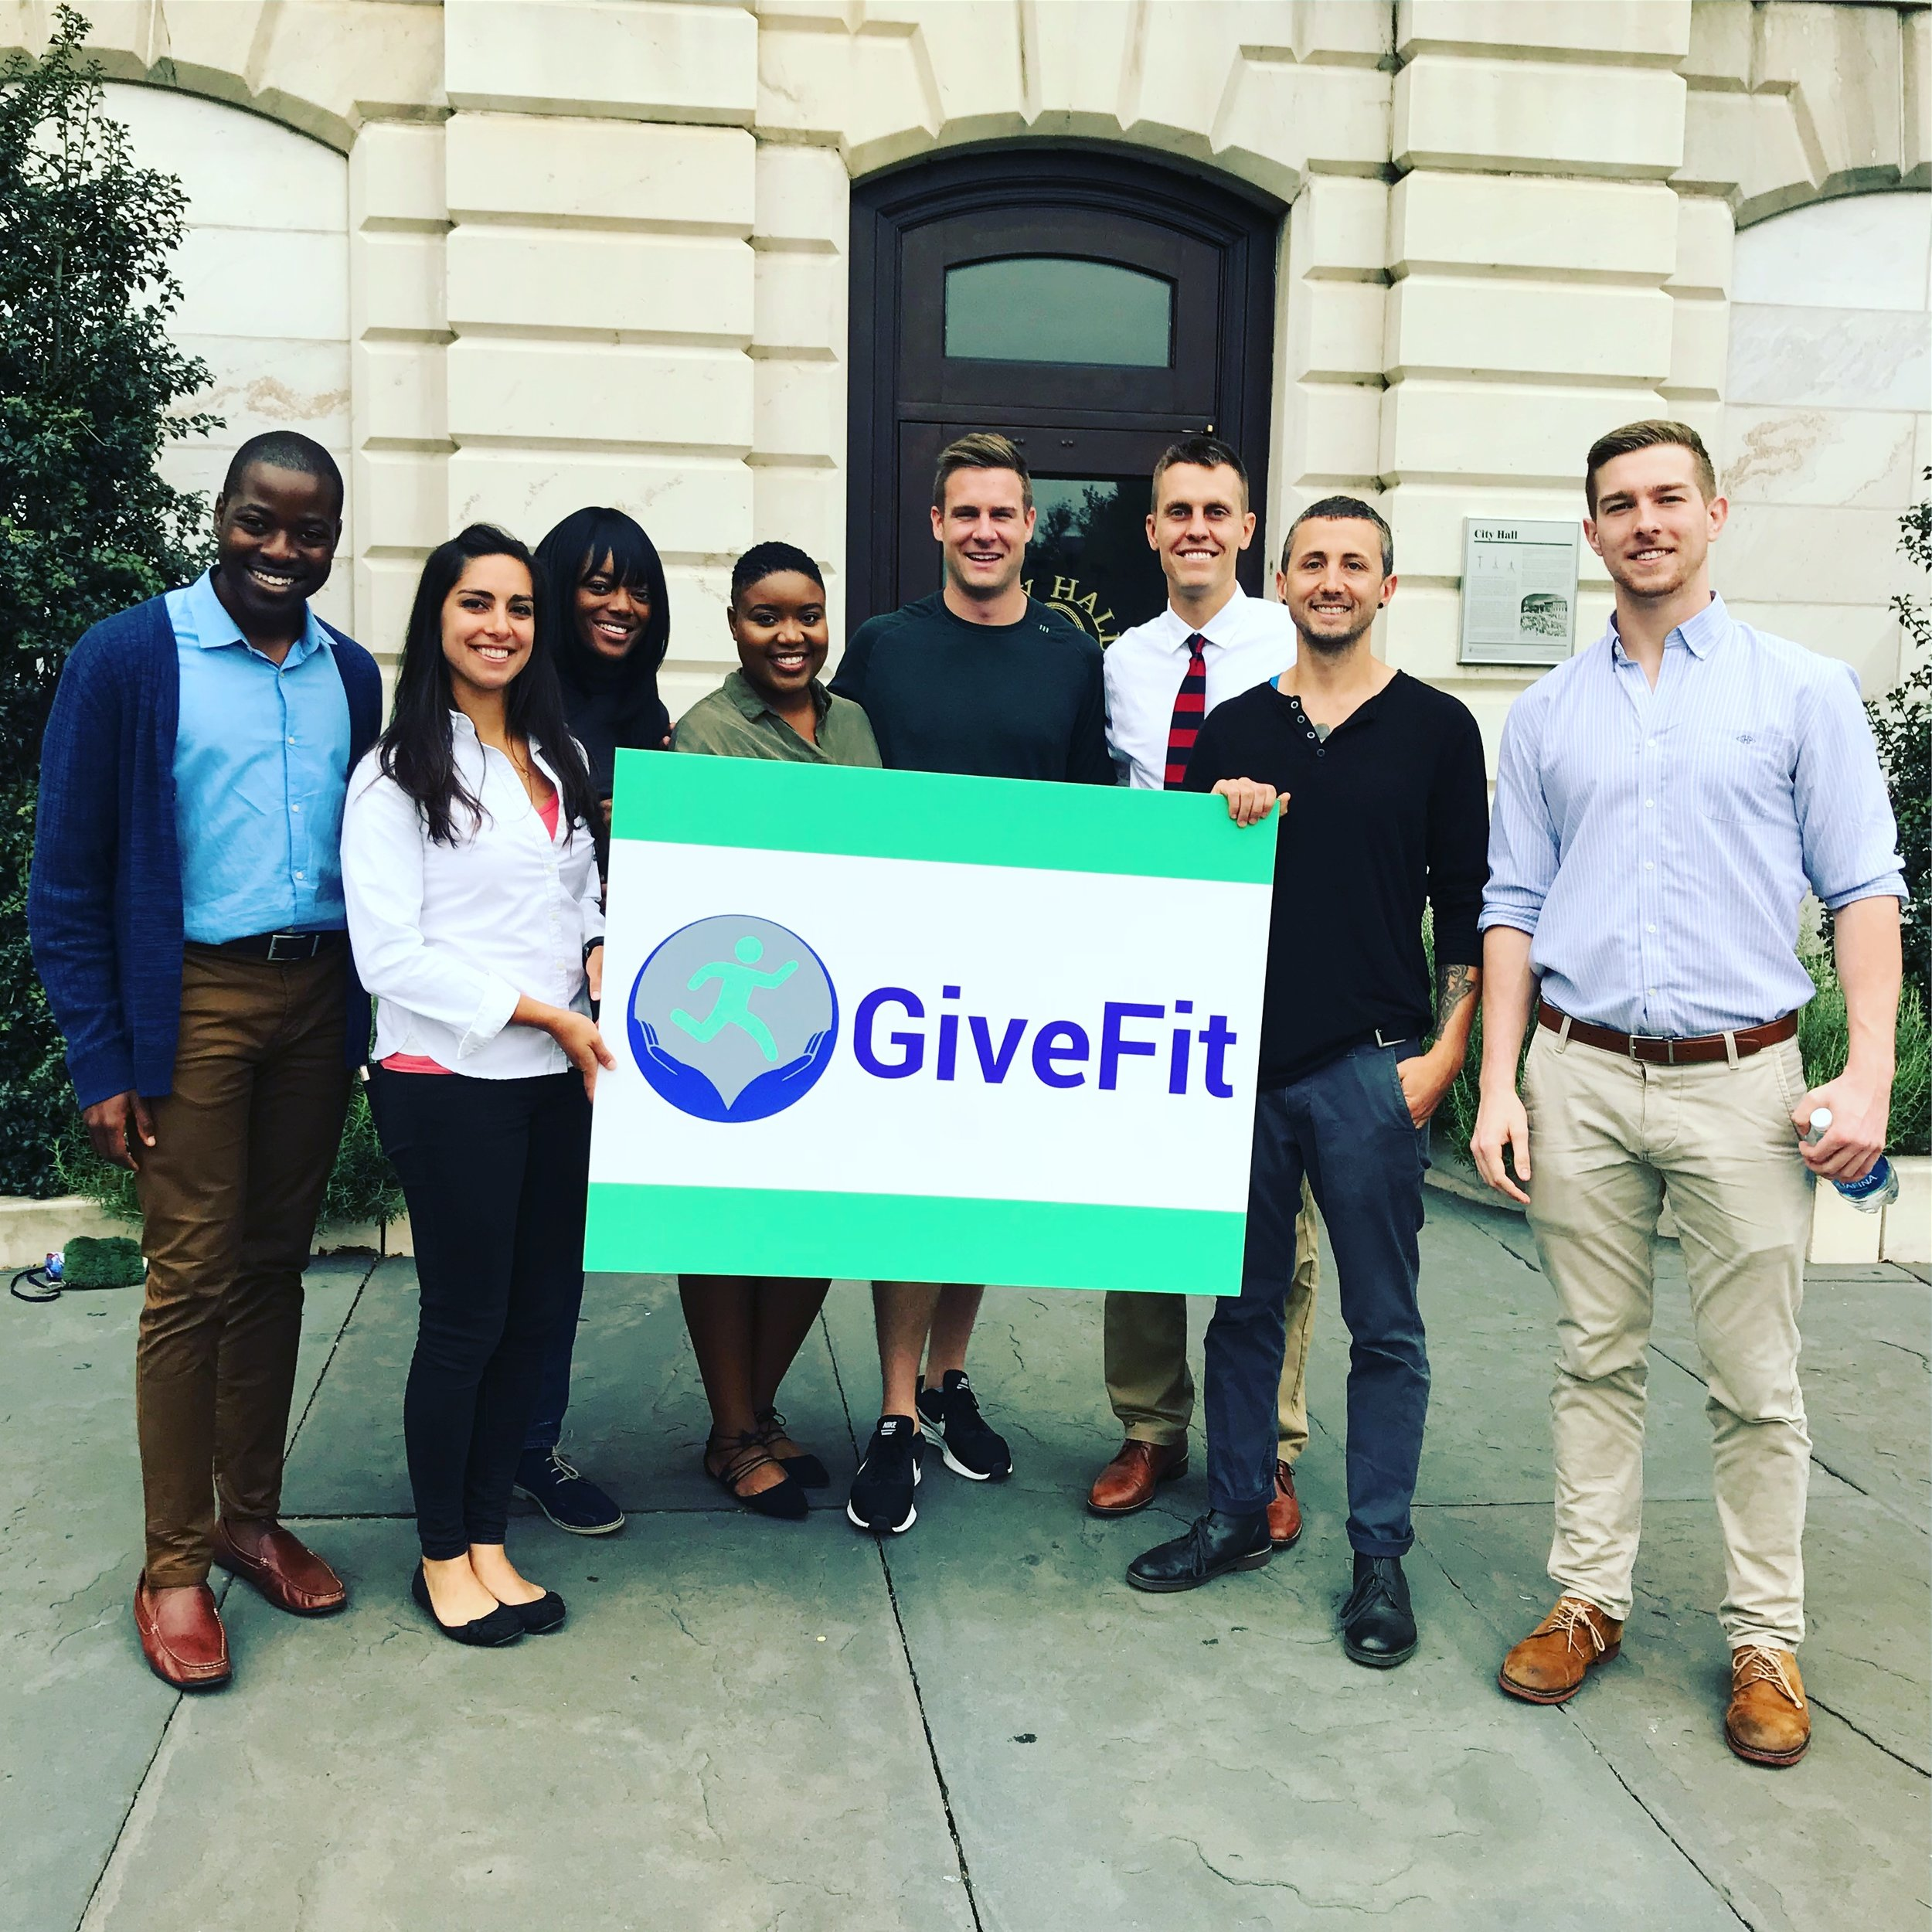 GiveFit promotes the fitness classes of those such as VoloCity, Living Classrooms, MissionFit, and many more!